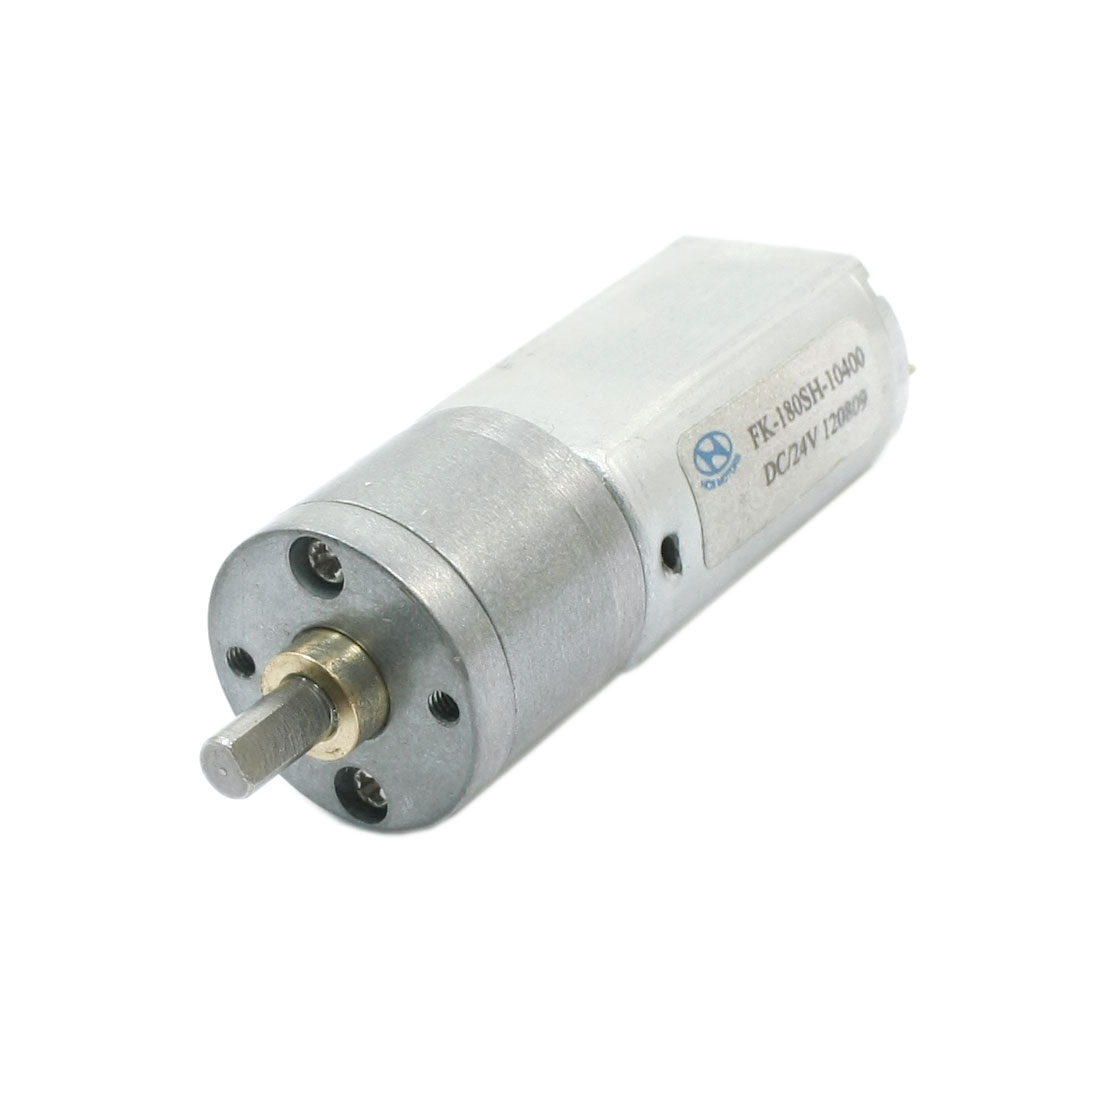 4mm Dia Drive Shaft 140rpm Output High Torque Rotary Speed Reduce Cylinder Shape Electric Geared Box Motor DC 24V